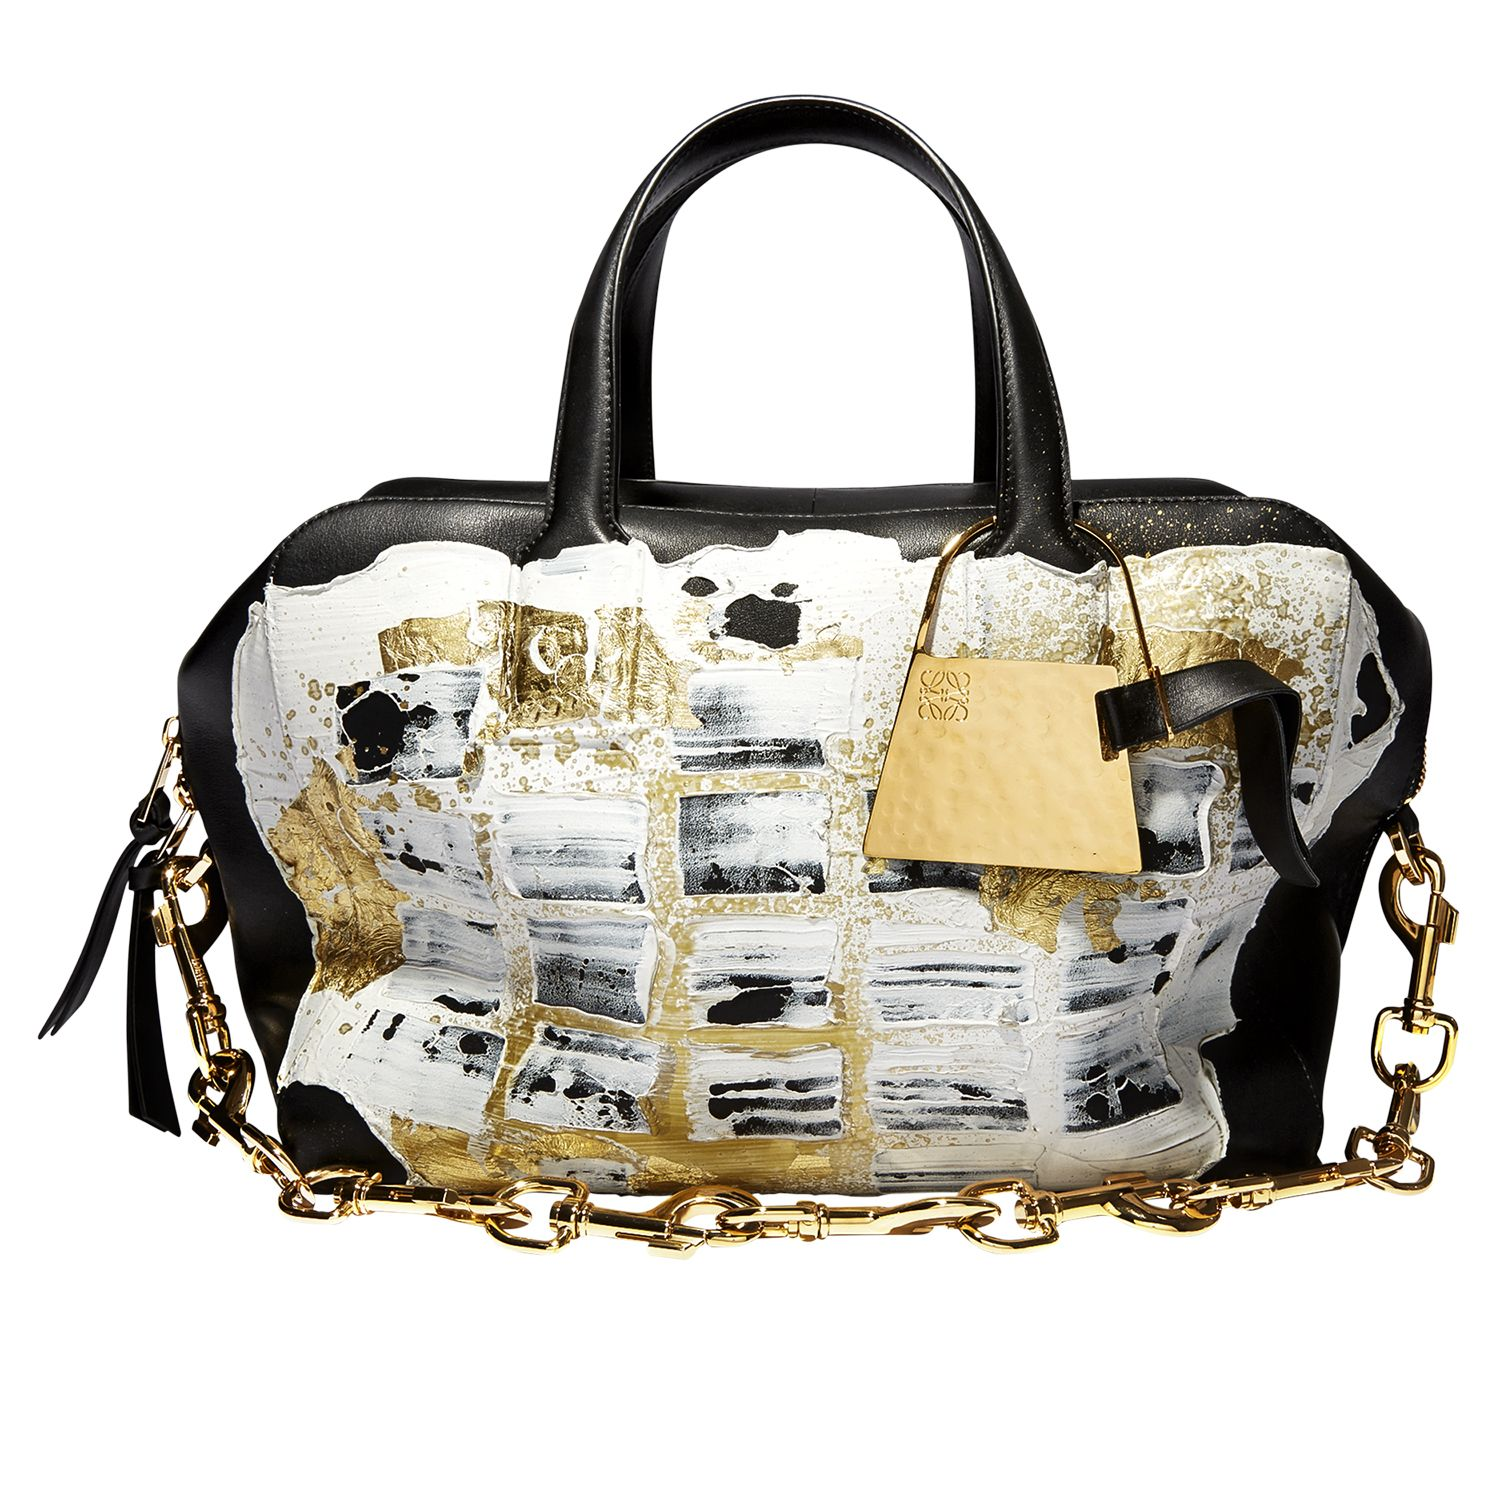 <p><strong>Loewe</strong> bag, $4,390, Barneys New York; 888-8-BARNEYS.</p>